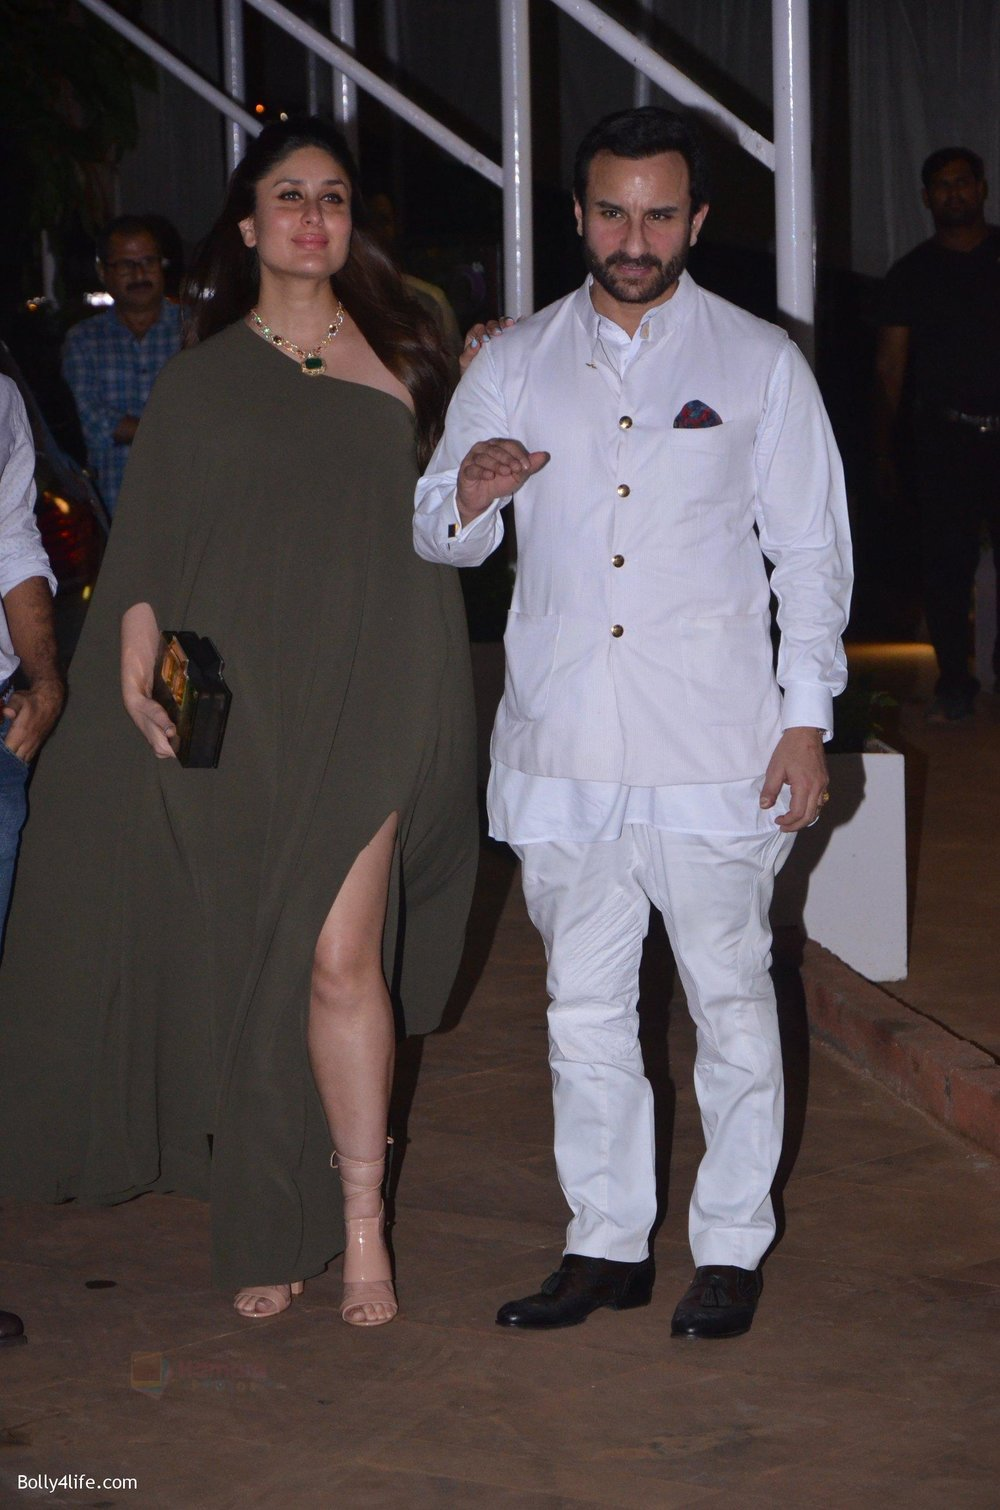 Saif-Ali-Khan-Kareena-Kapoor-at-Reema-jain-bday-party-in-Amadeus-NCPA-on-28th-Sept-2016-859.jpg